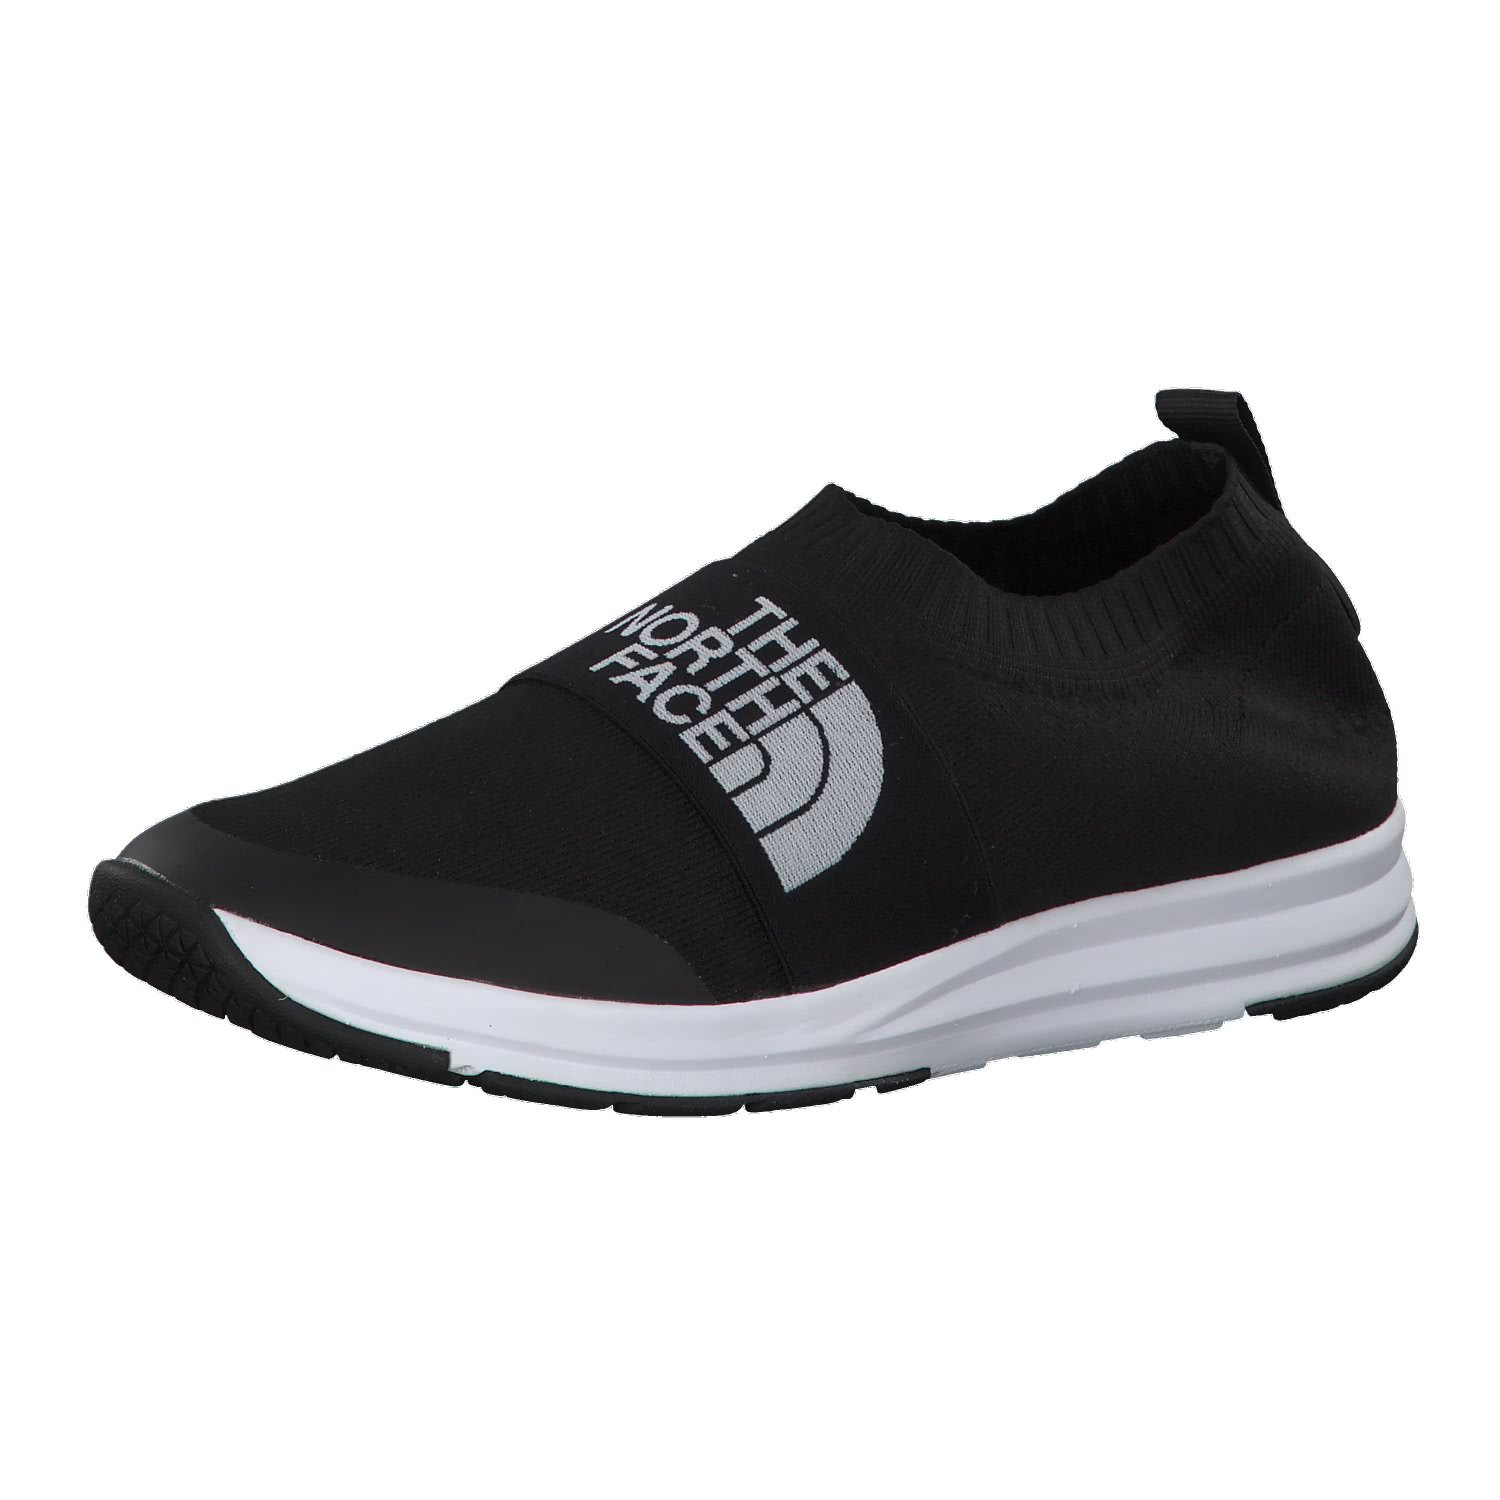 THE NORTH FACE Herren Turnschuhe Turnschuhe Turnschuhe NSE Traction Knit MOC 3RR5 1825ef